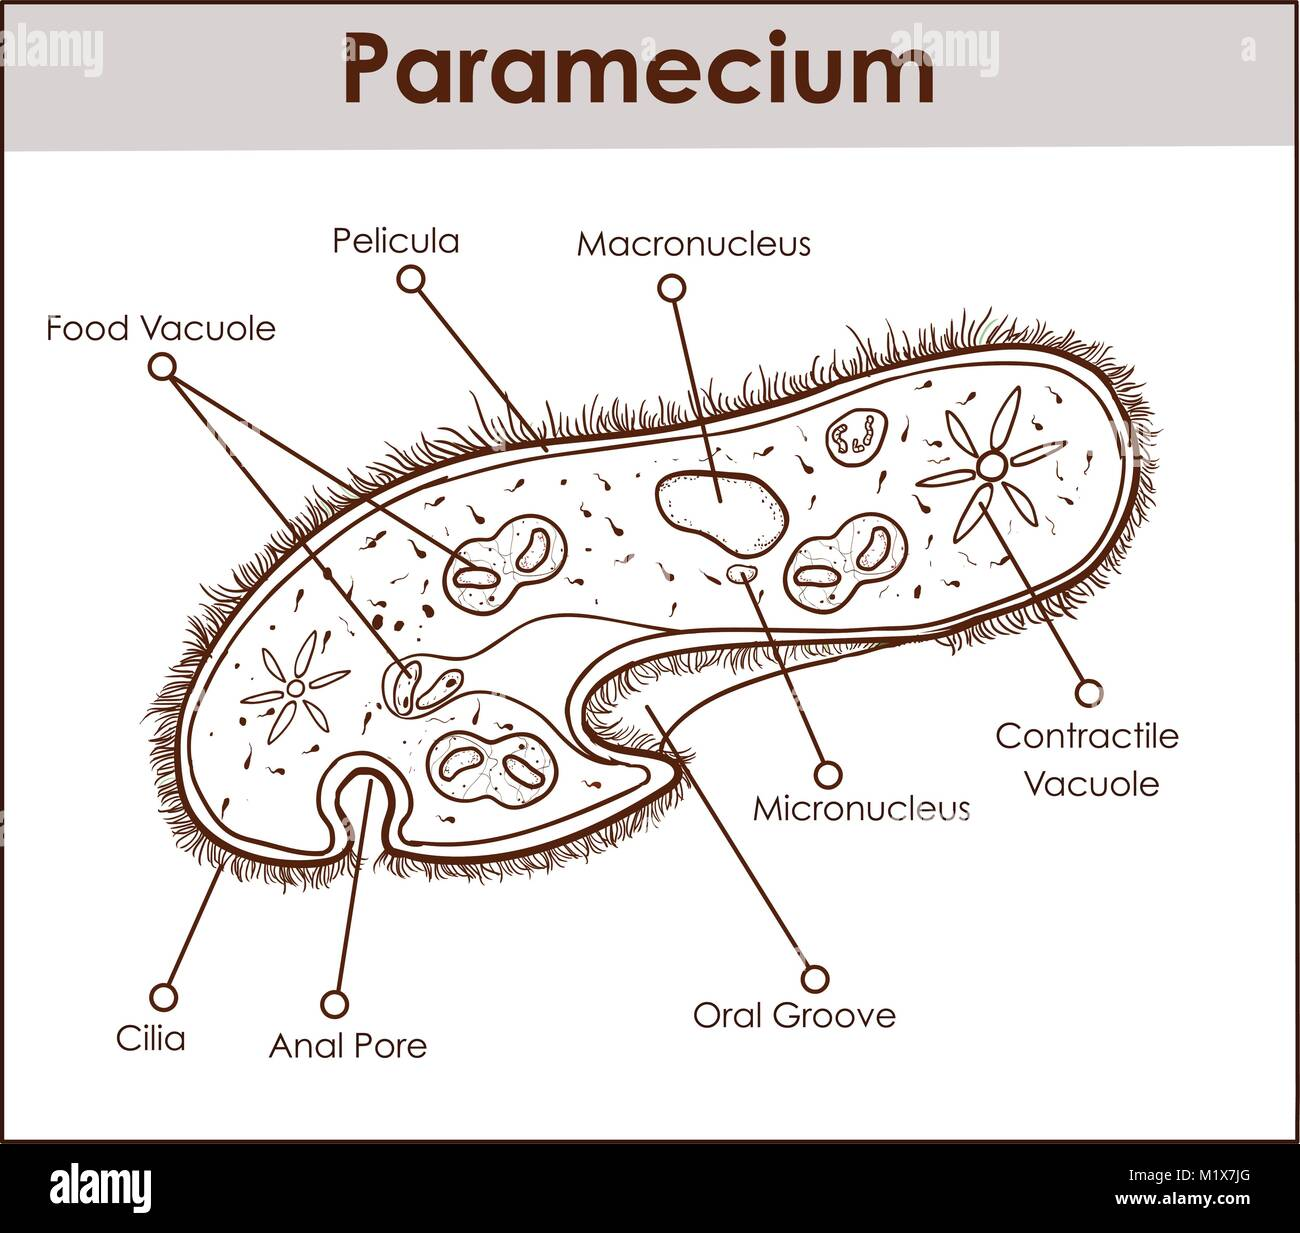 paramecium diagram blank wiring for caravan 13 pin plug of online the structure saudatum stock vector art illustration what phylum is caudatum